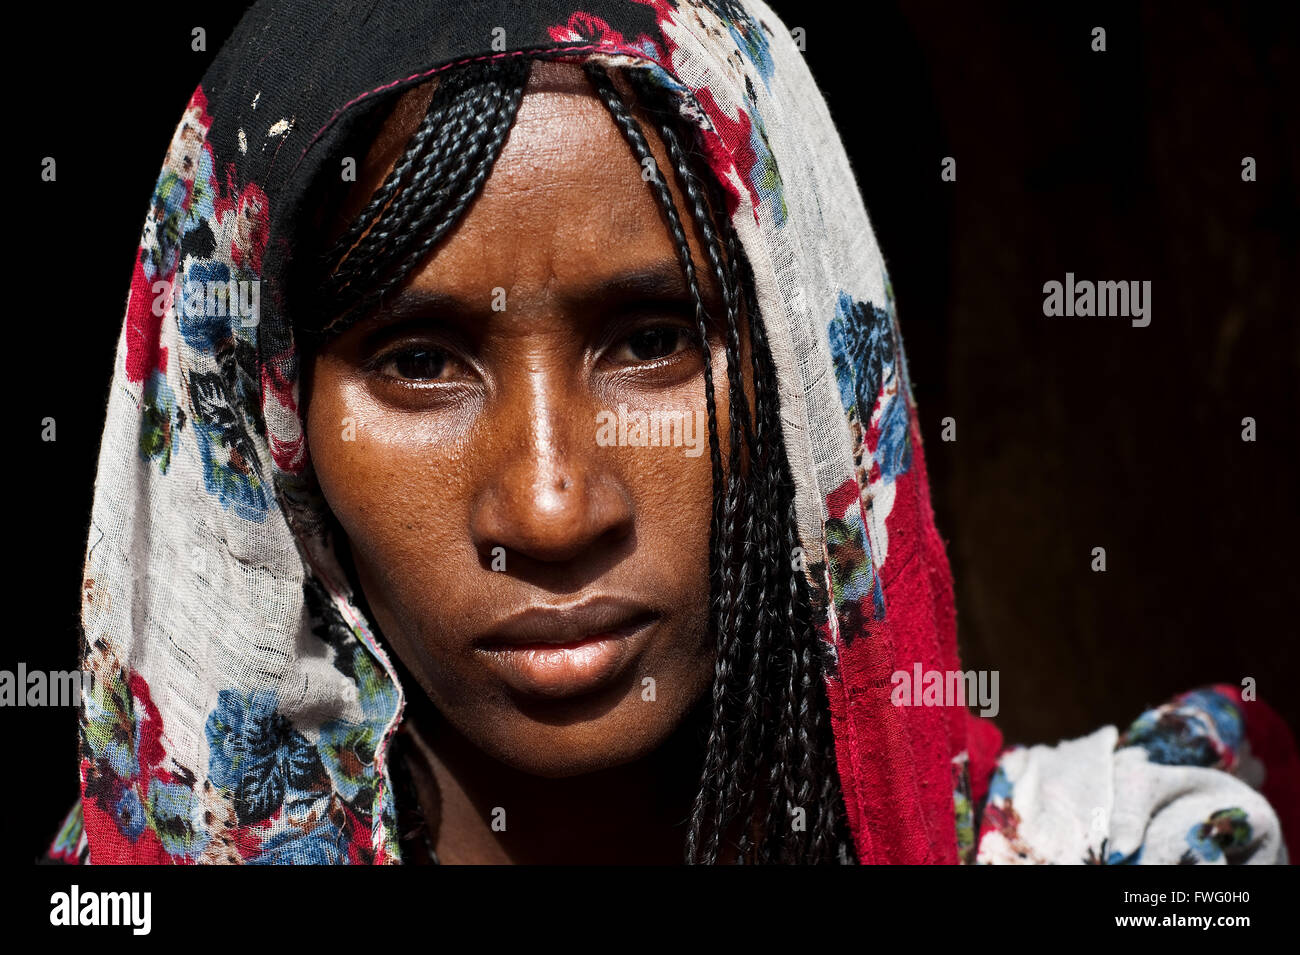 Eritrean female refugee. She belongs to the Afar tribe, she is muslim. - Stock Image